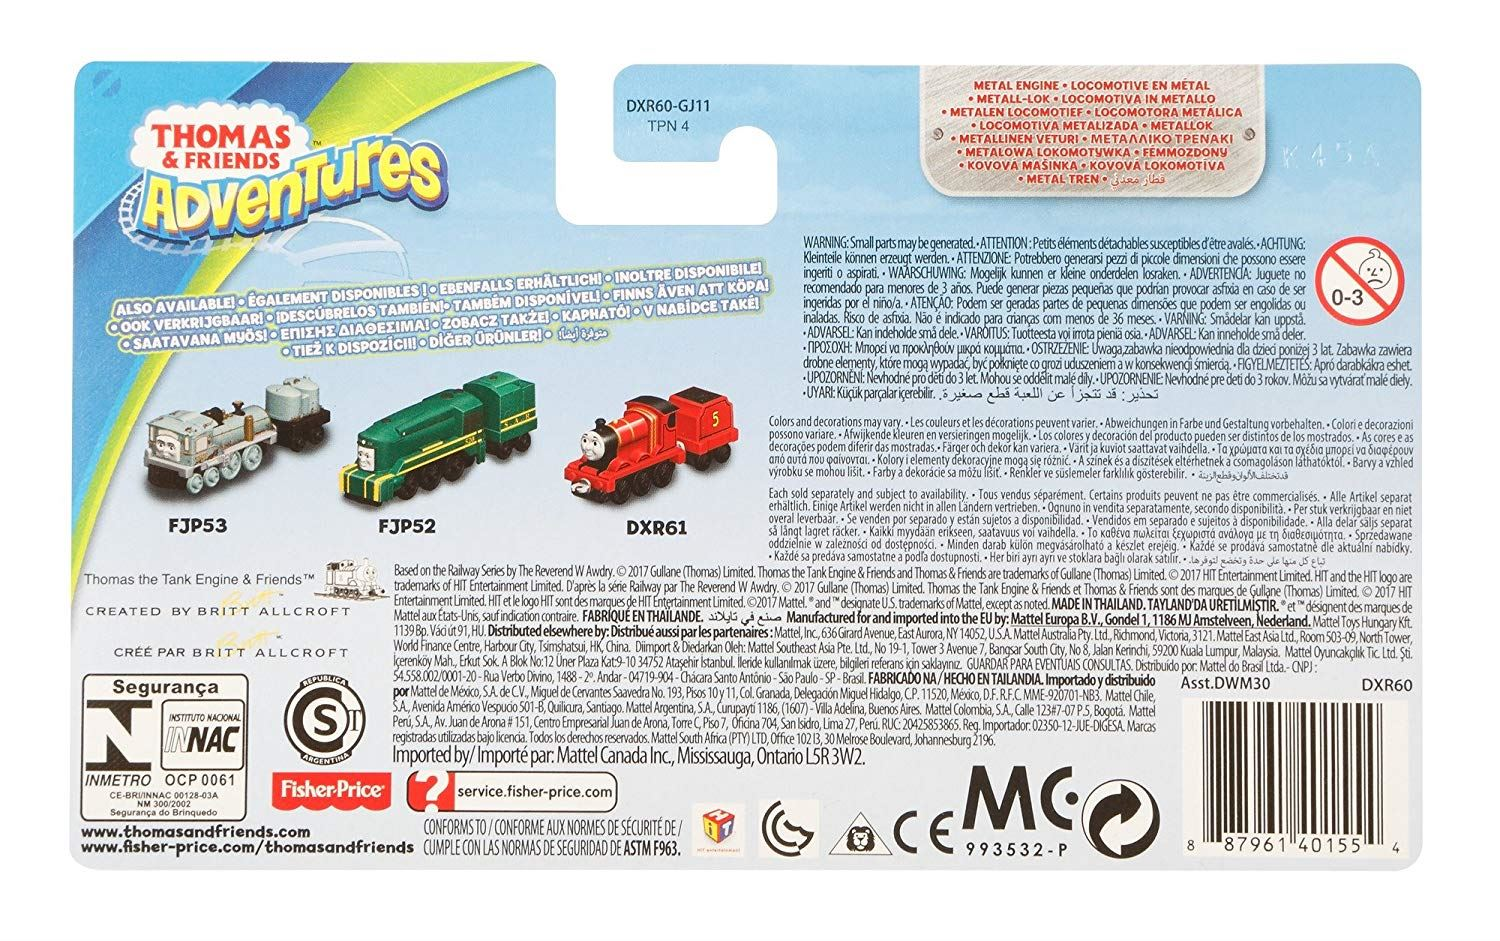 Thomas-amp-Friends-Adventures-Ferdinand-lexi-Shane-Dash-Huge-Bill-Trains Indexbild 26